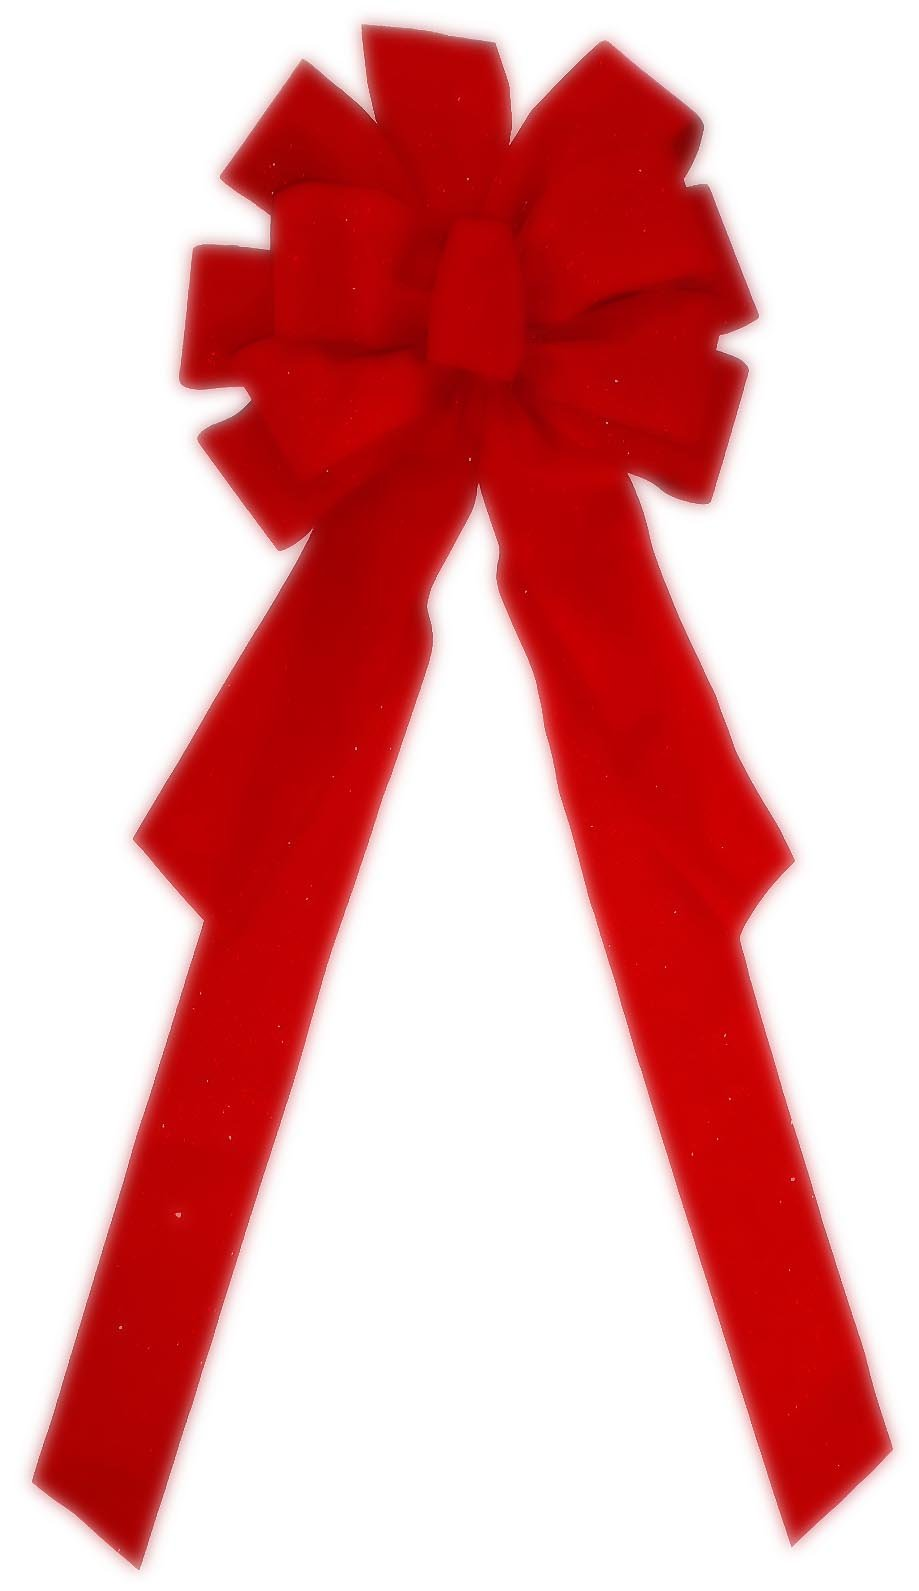 Large Red Bow 10 Loops 30'' X 11'' Velvet #0351567 ~ Indoor or Outdoor Holiday Christmas Decoration for Front Door Tree Wreath Garage House Windows Office Classroom Hotel Fireplace Mantle Church School Decorations Etc.